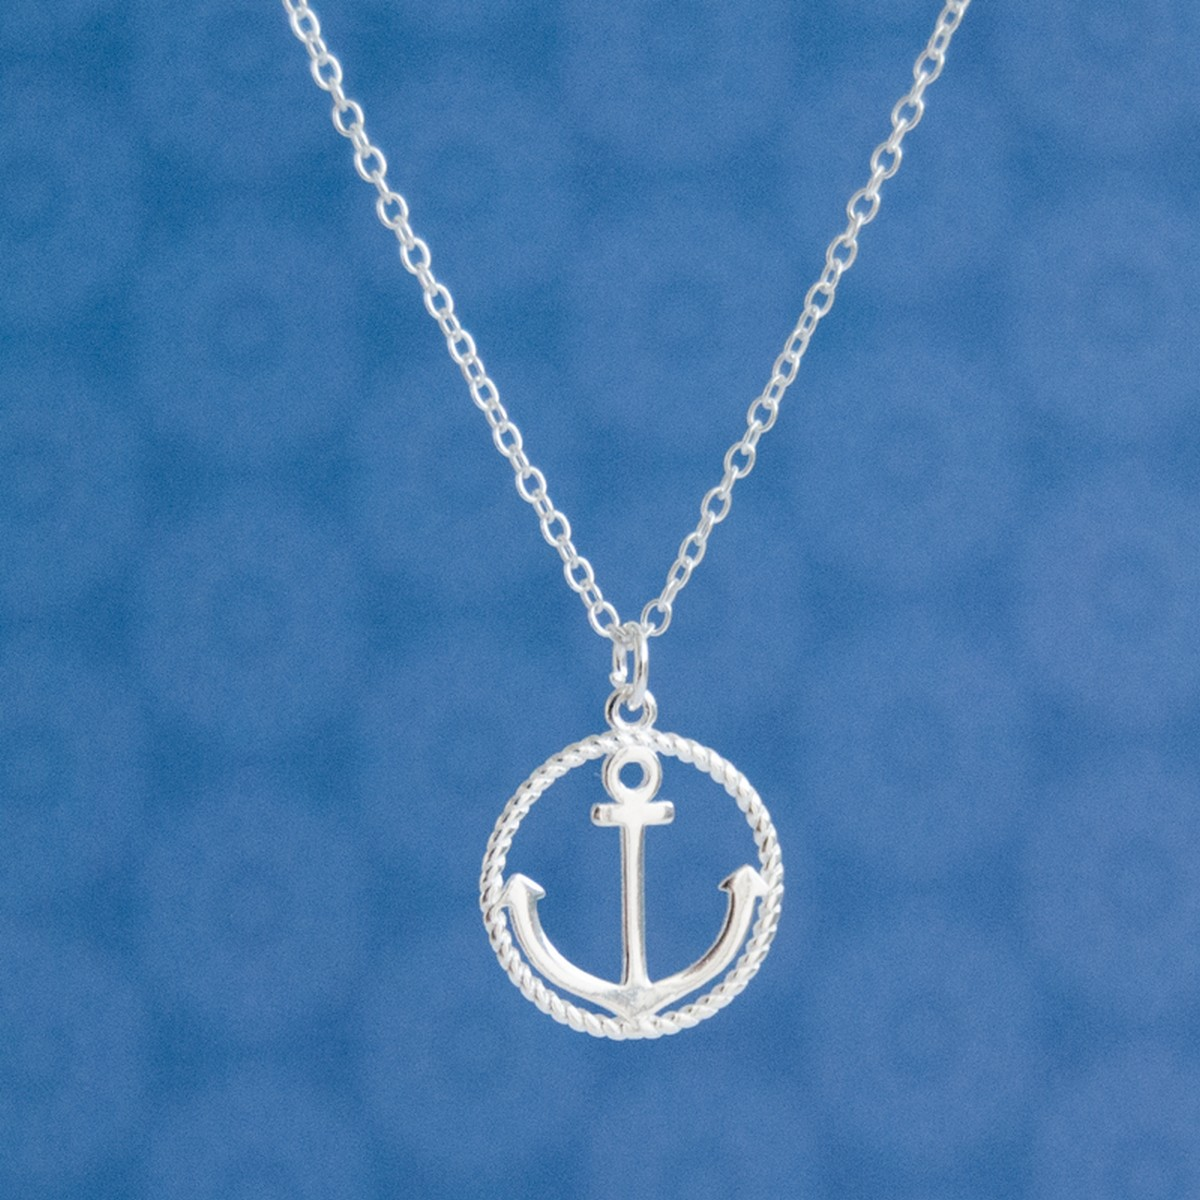 Anchor | Ketting 925 zilver